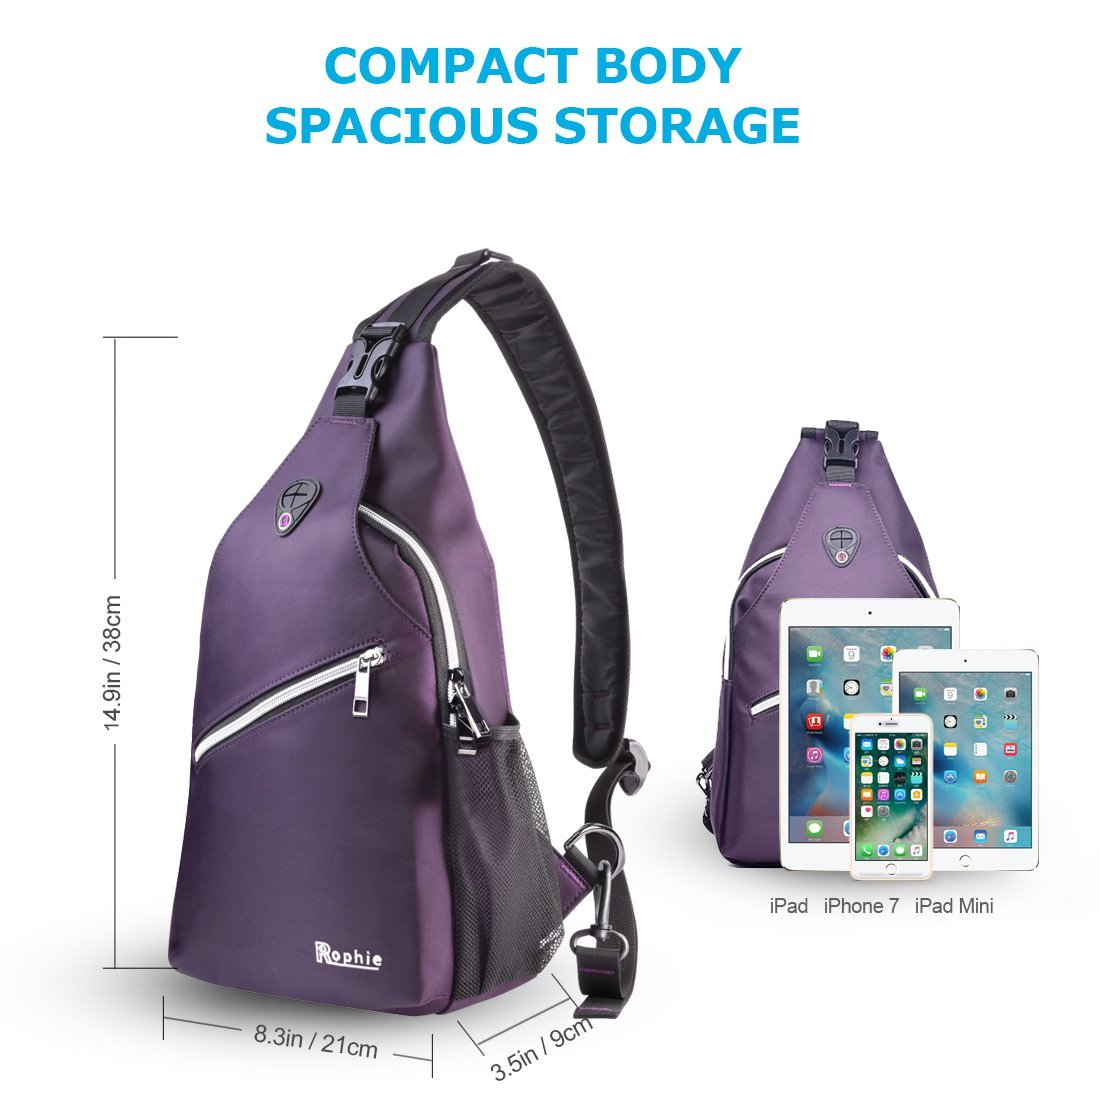 Rophie Sling Bag Pack for Bottle and iPad Chest Shoulder Crossbody Hiking  Backpack Outdoor Sport Bicycle Rucksack Camping Travel Casual Daypack for  Men ... 0b674daae1ff3